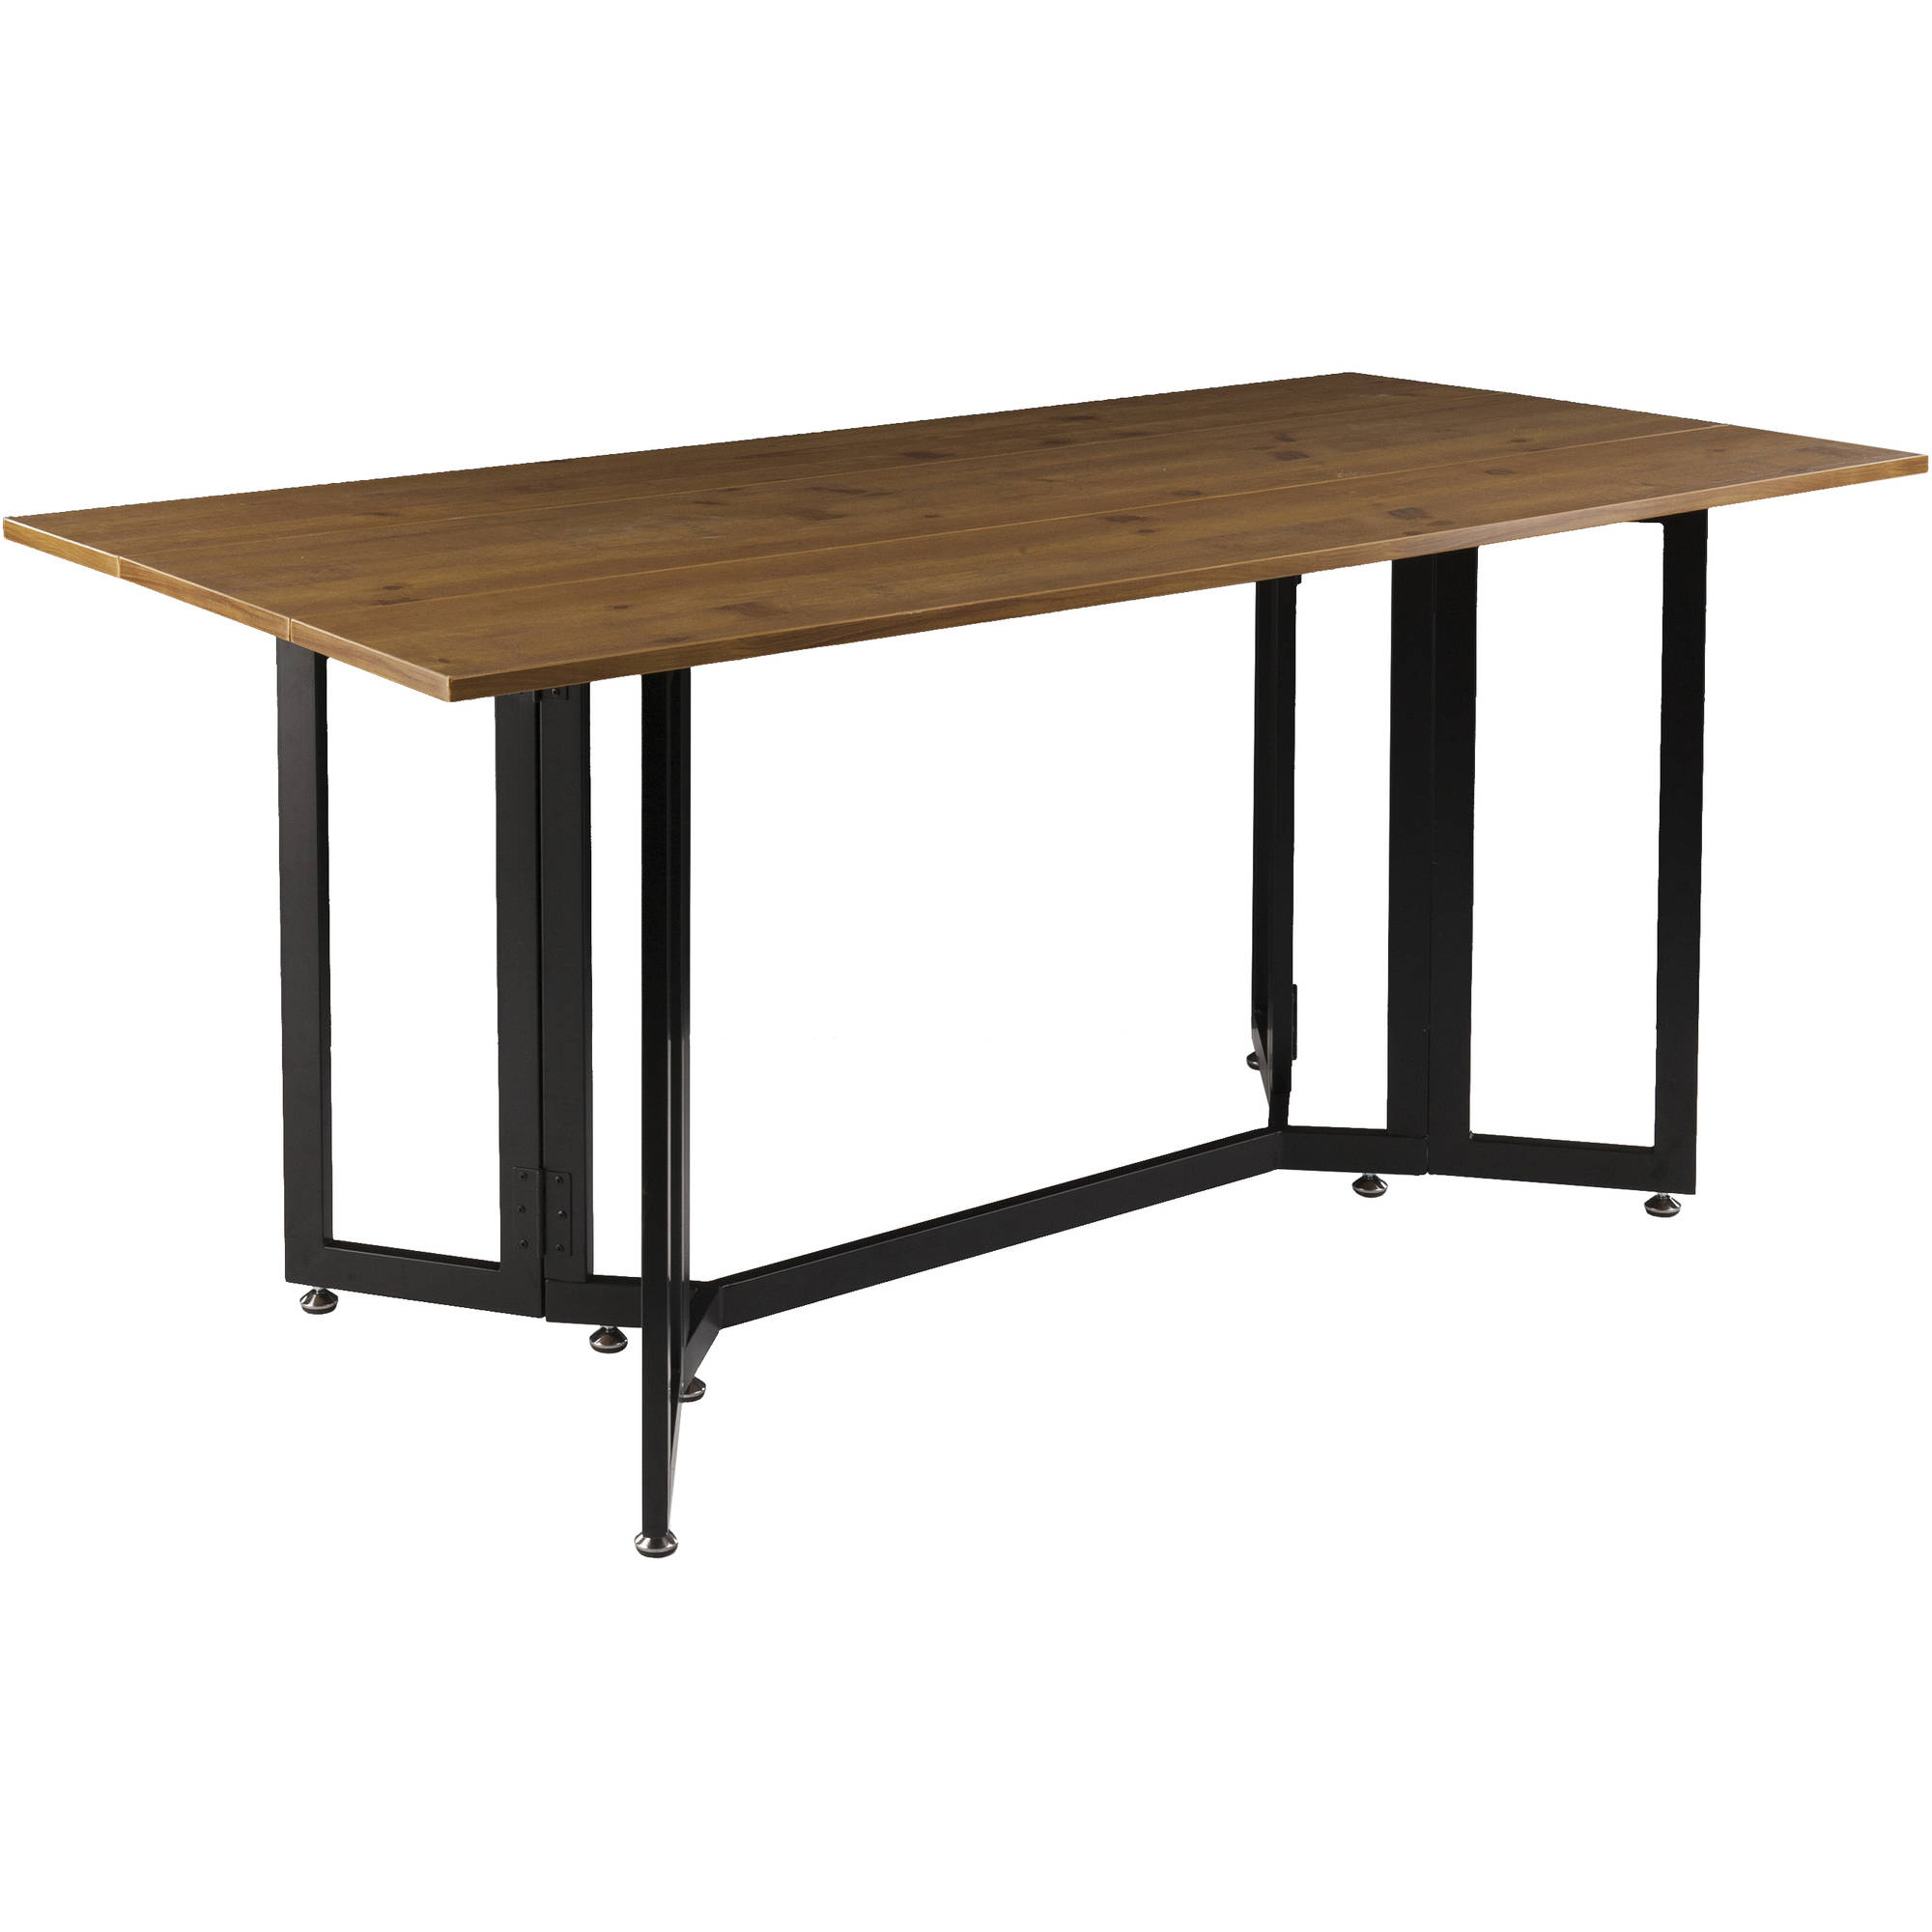 Holly & Martin Driness Drop Leaf Table, Dark Tobacco with Black